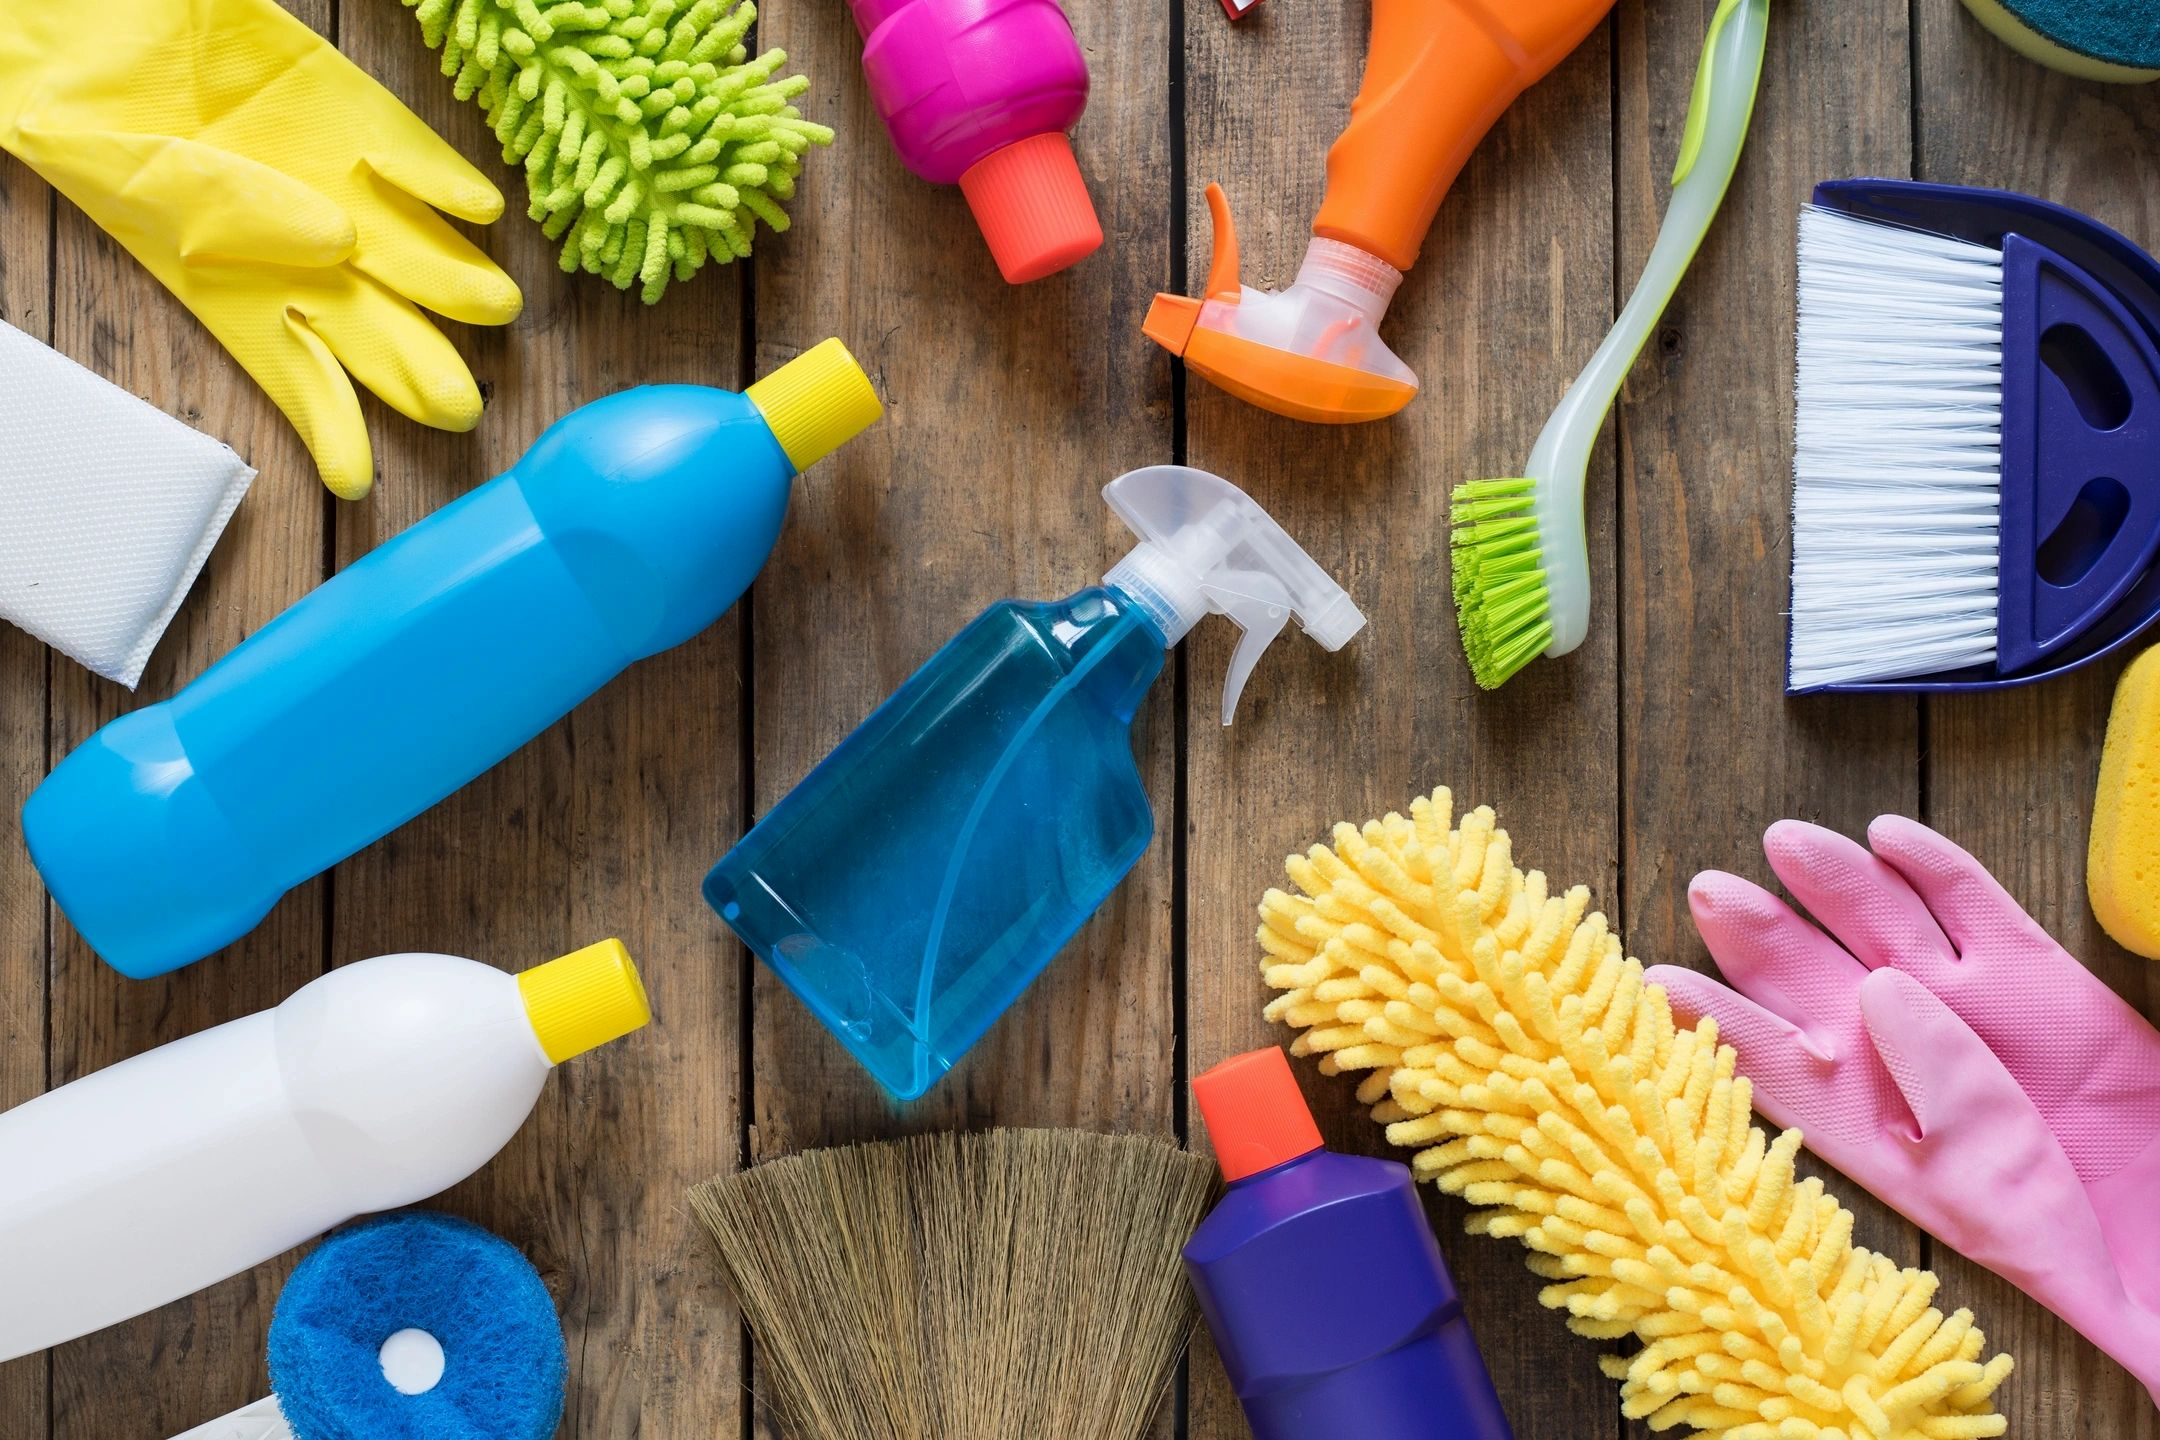 Spring Forward into The New Year: Some Tips for Mental Health Spring Cleaning